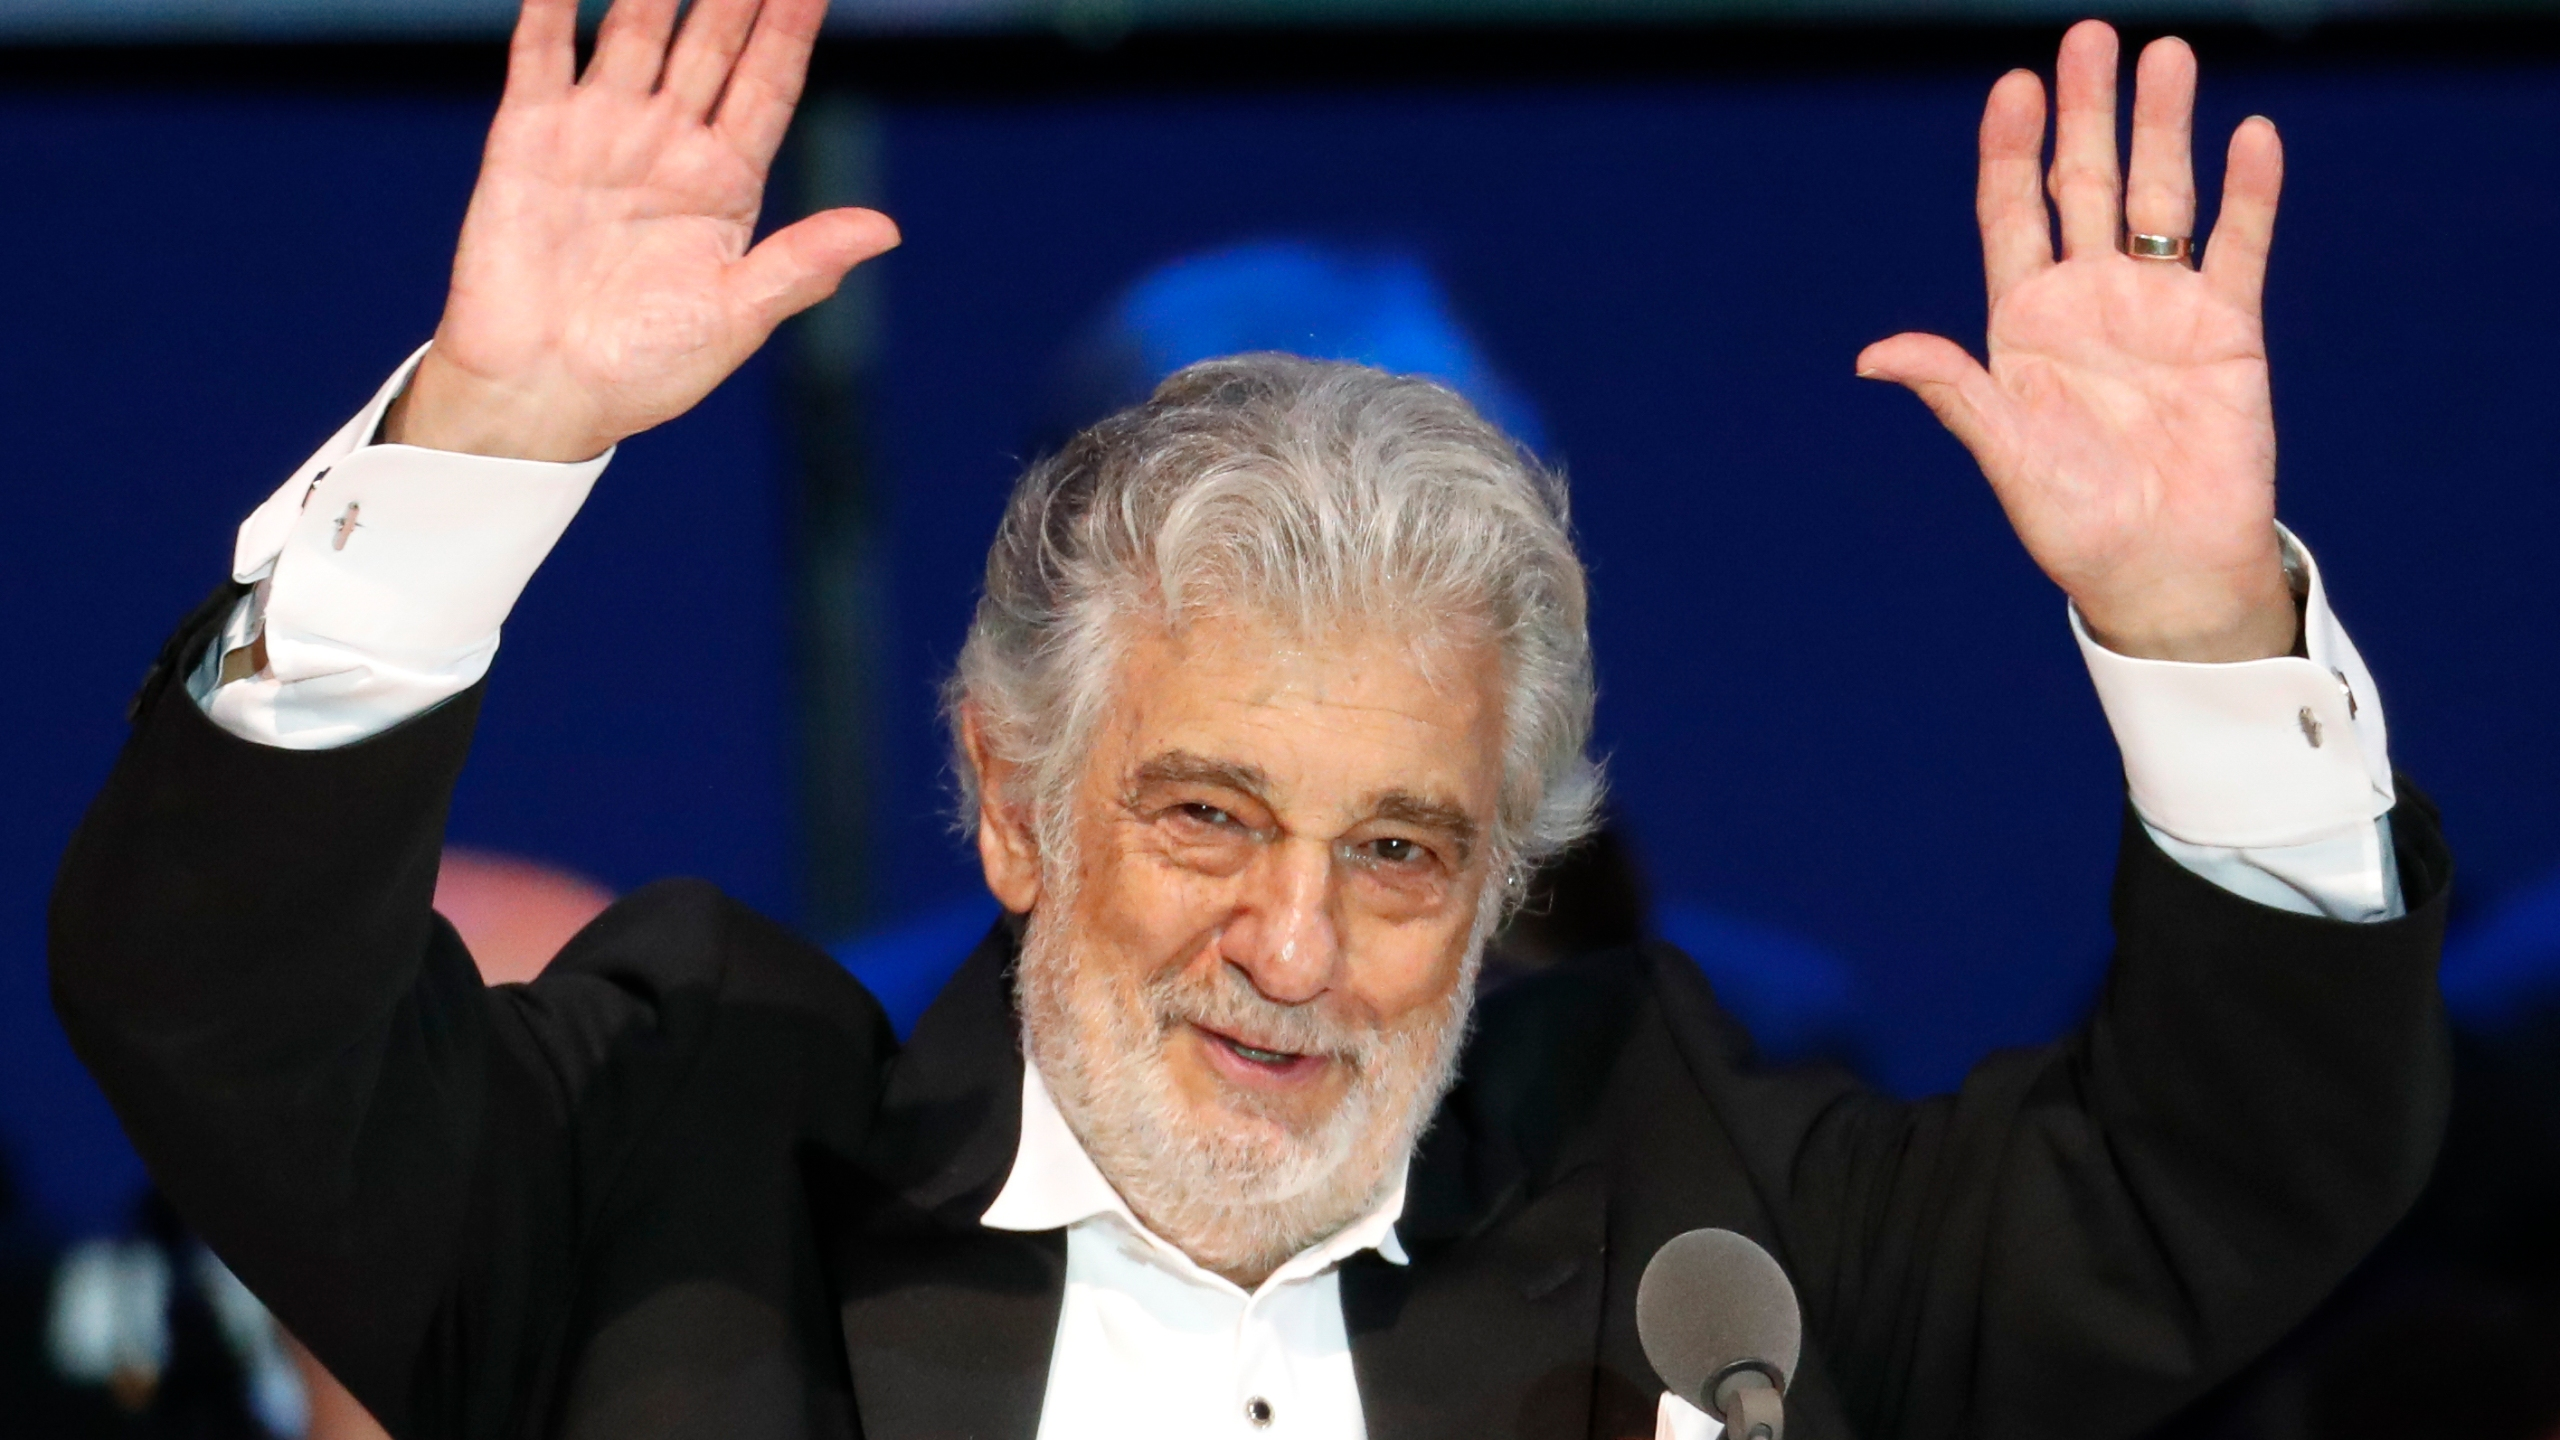 Placido Domingo Christmas Eve New York 2020 Placido Domingo to receive lifetime award in Austria | ABC27